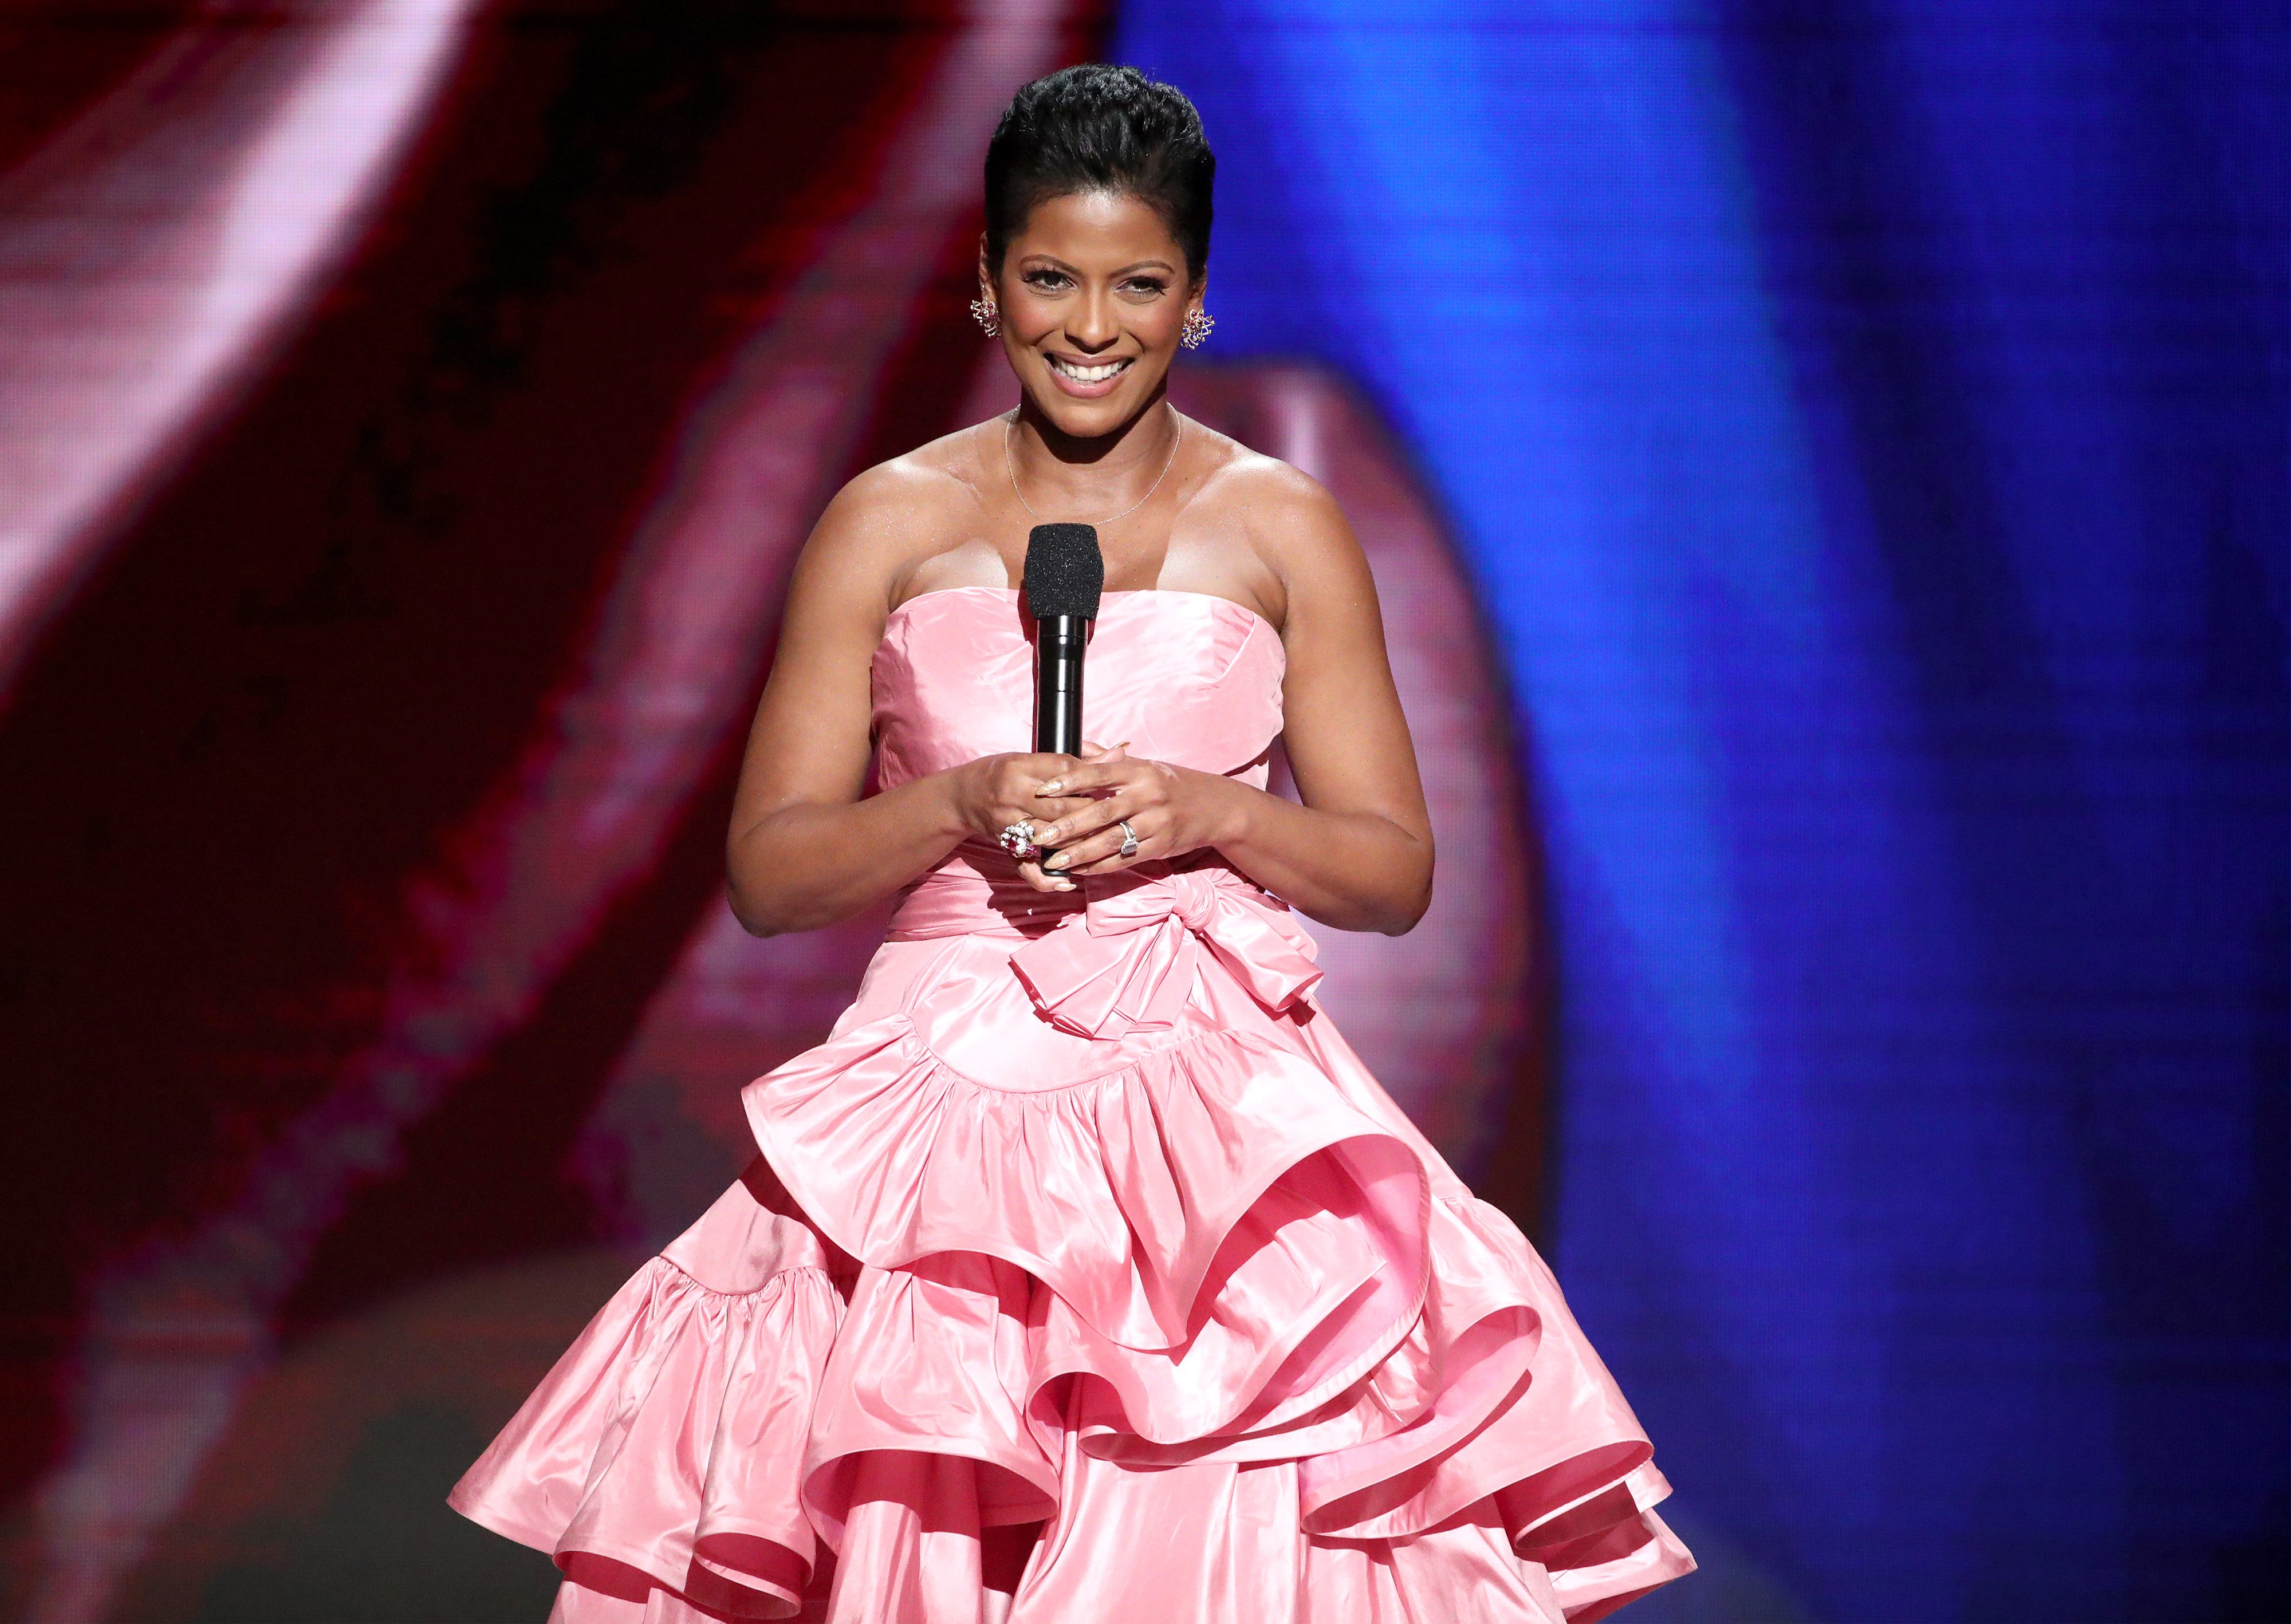 Tamron Hall pictured at the 51st NAACP Image Awards at Pasadena Civic Auditorium on February 22, 2020 in Pasadena, California. | Source: Getty Images